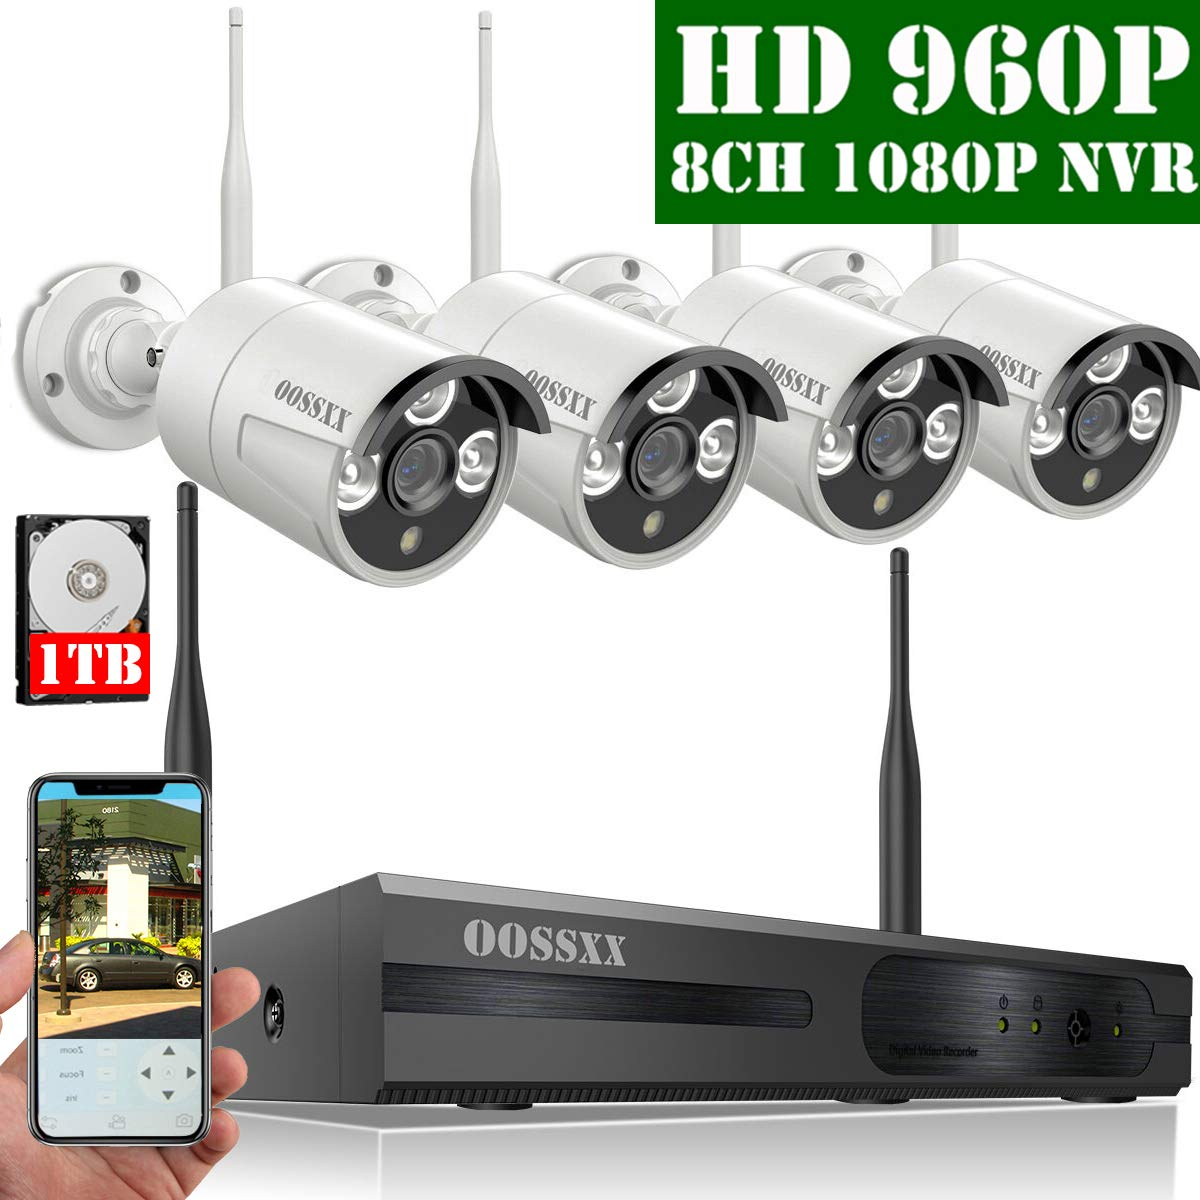 【2019 Update】 HD 1080P 8-Channel OOSSXX Wireless Security Camera System,4Pcs 960P(1.3 Megapixel) Wireless Indoor/Outdoor IR Bullet IP Cameras,P2P,App, HDMI Cord & 1TB HDD Pre-Install by OOSSXX